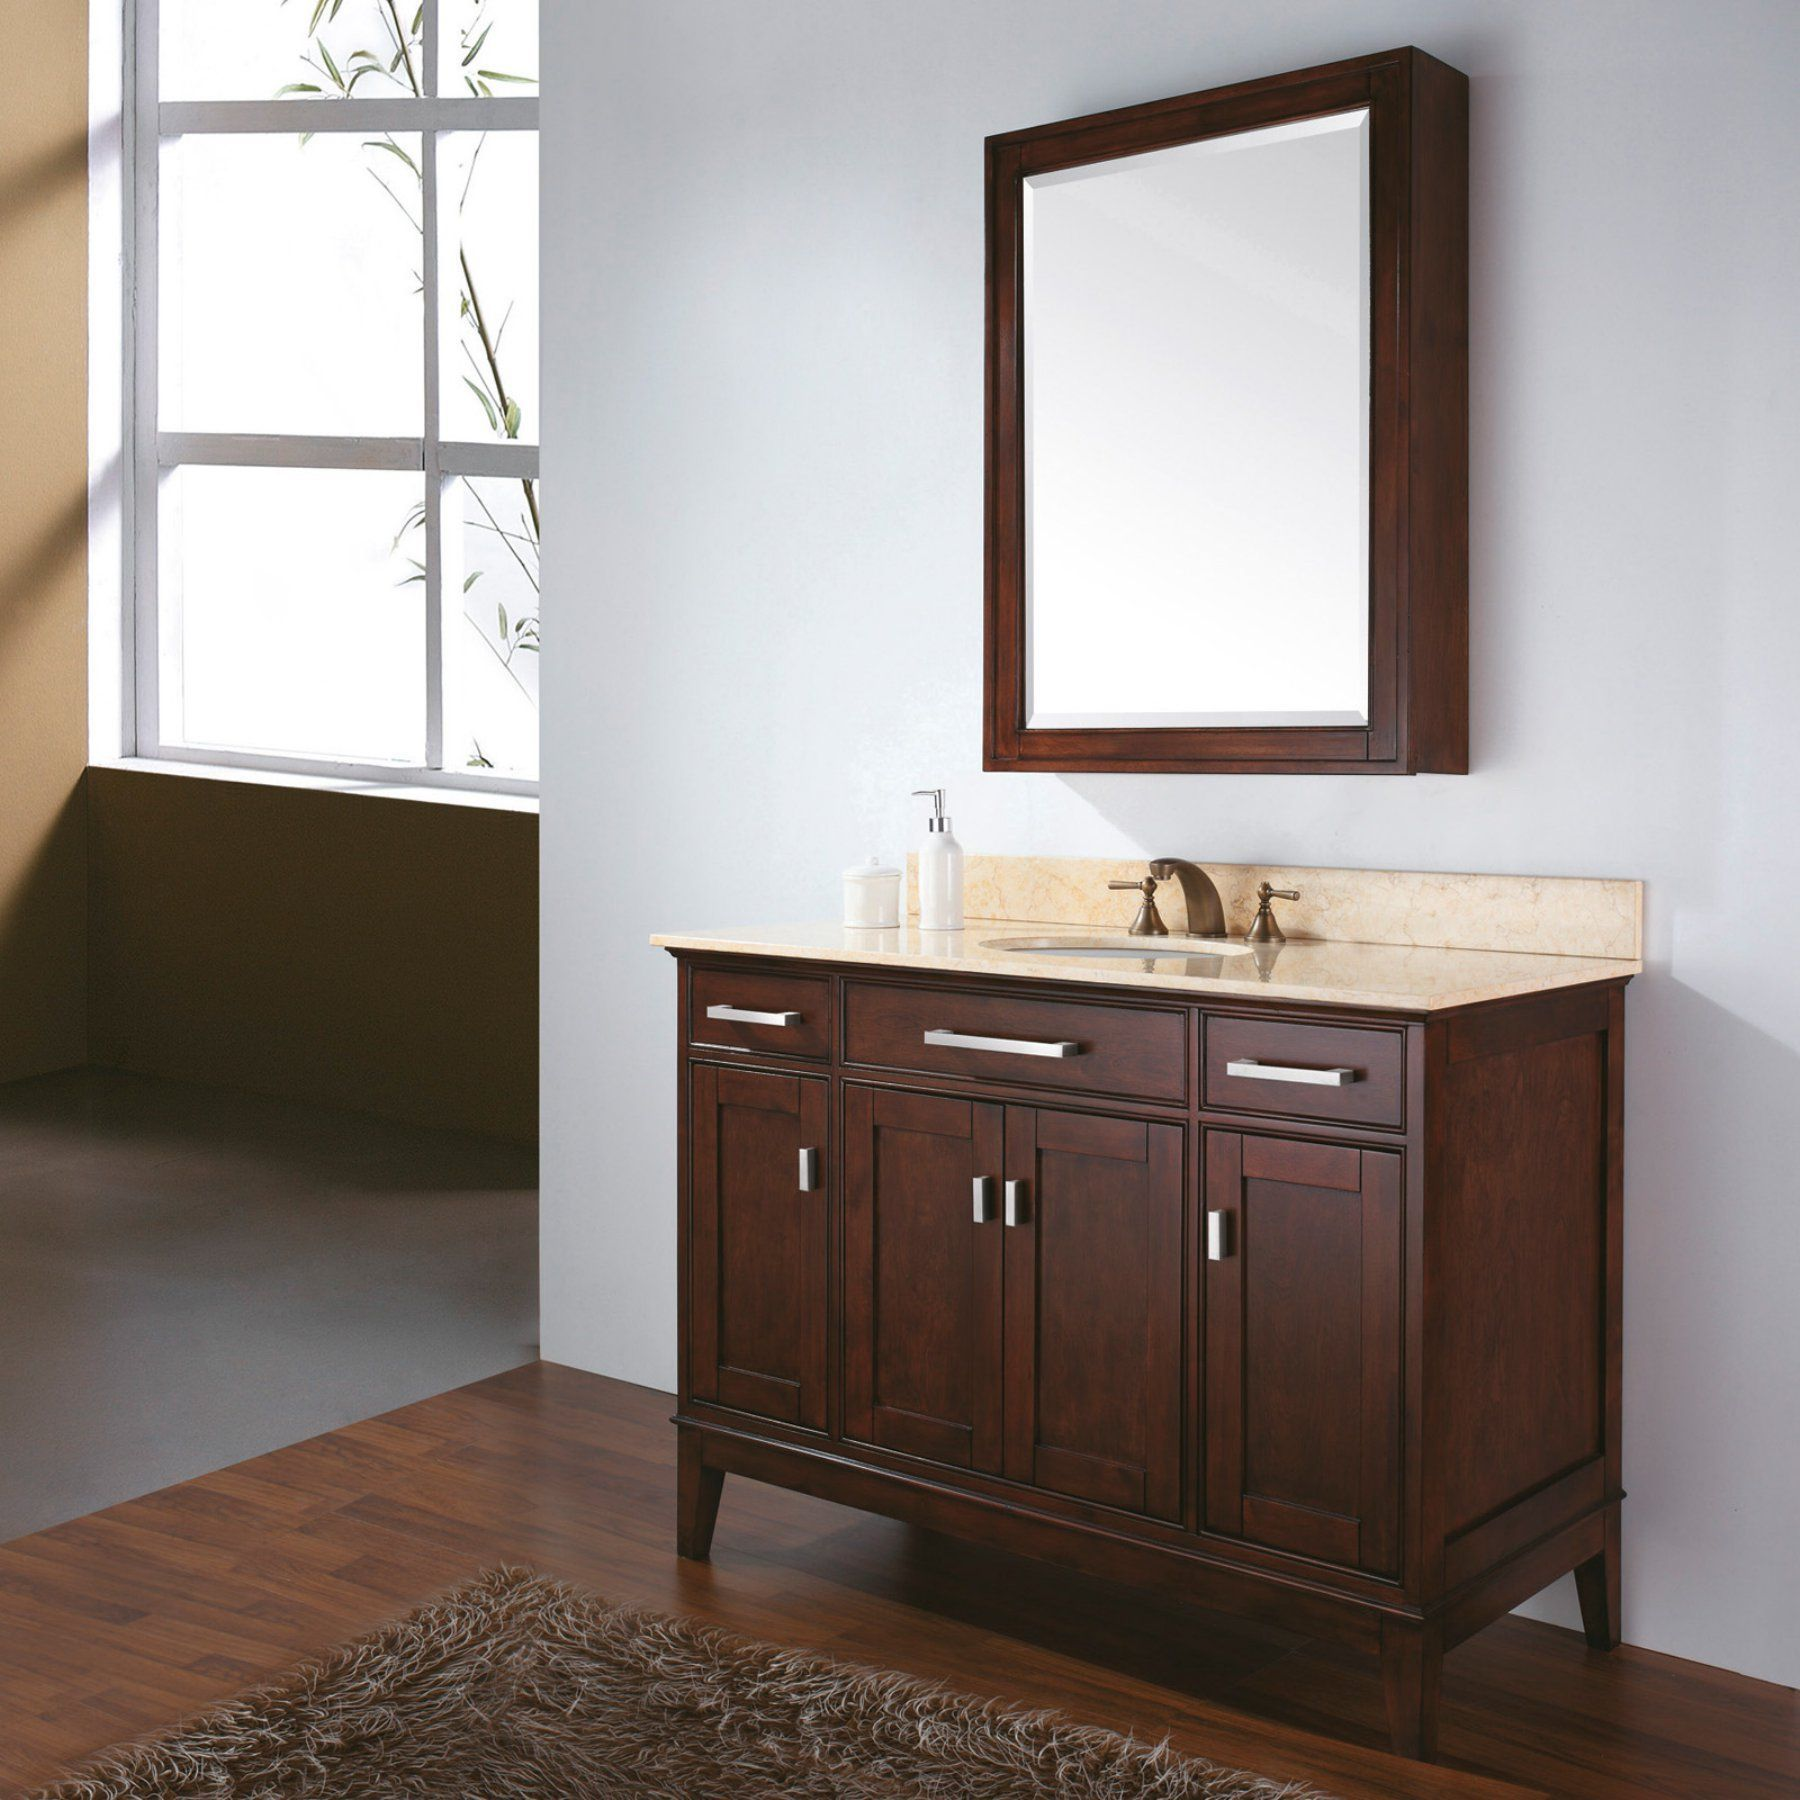 Best Price To Avanity Madison Vanity X Online From Our Exotic Home Expo Website See Other Products